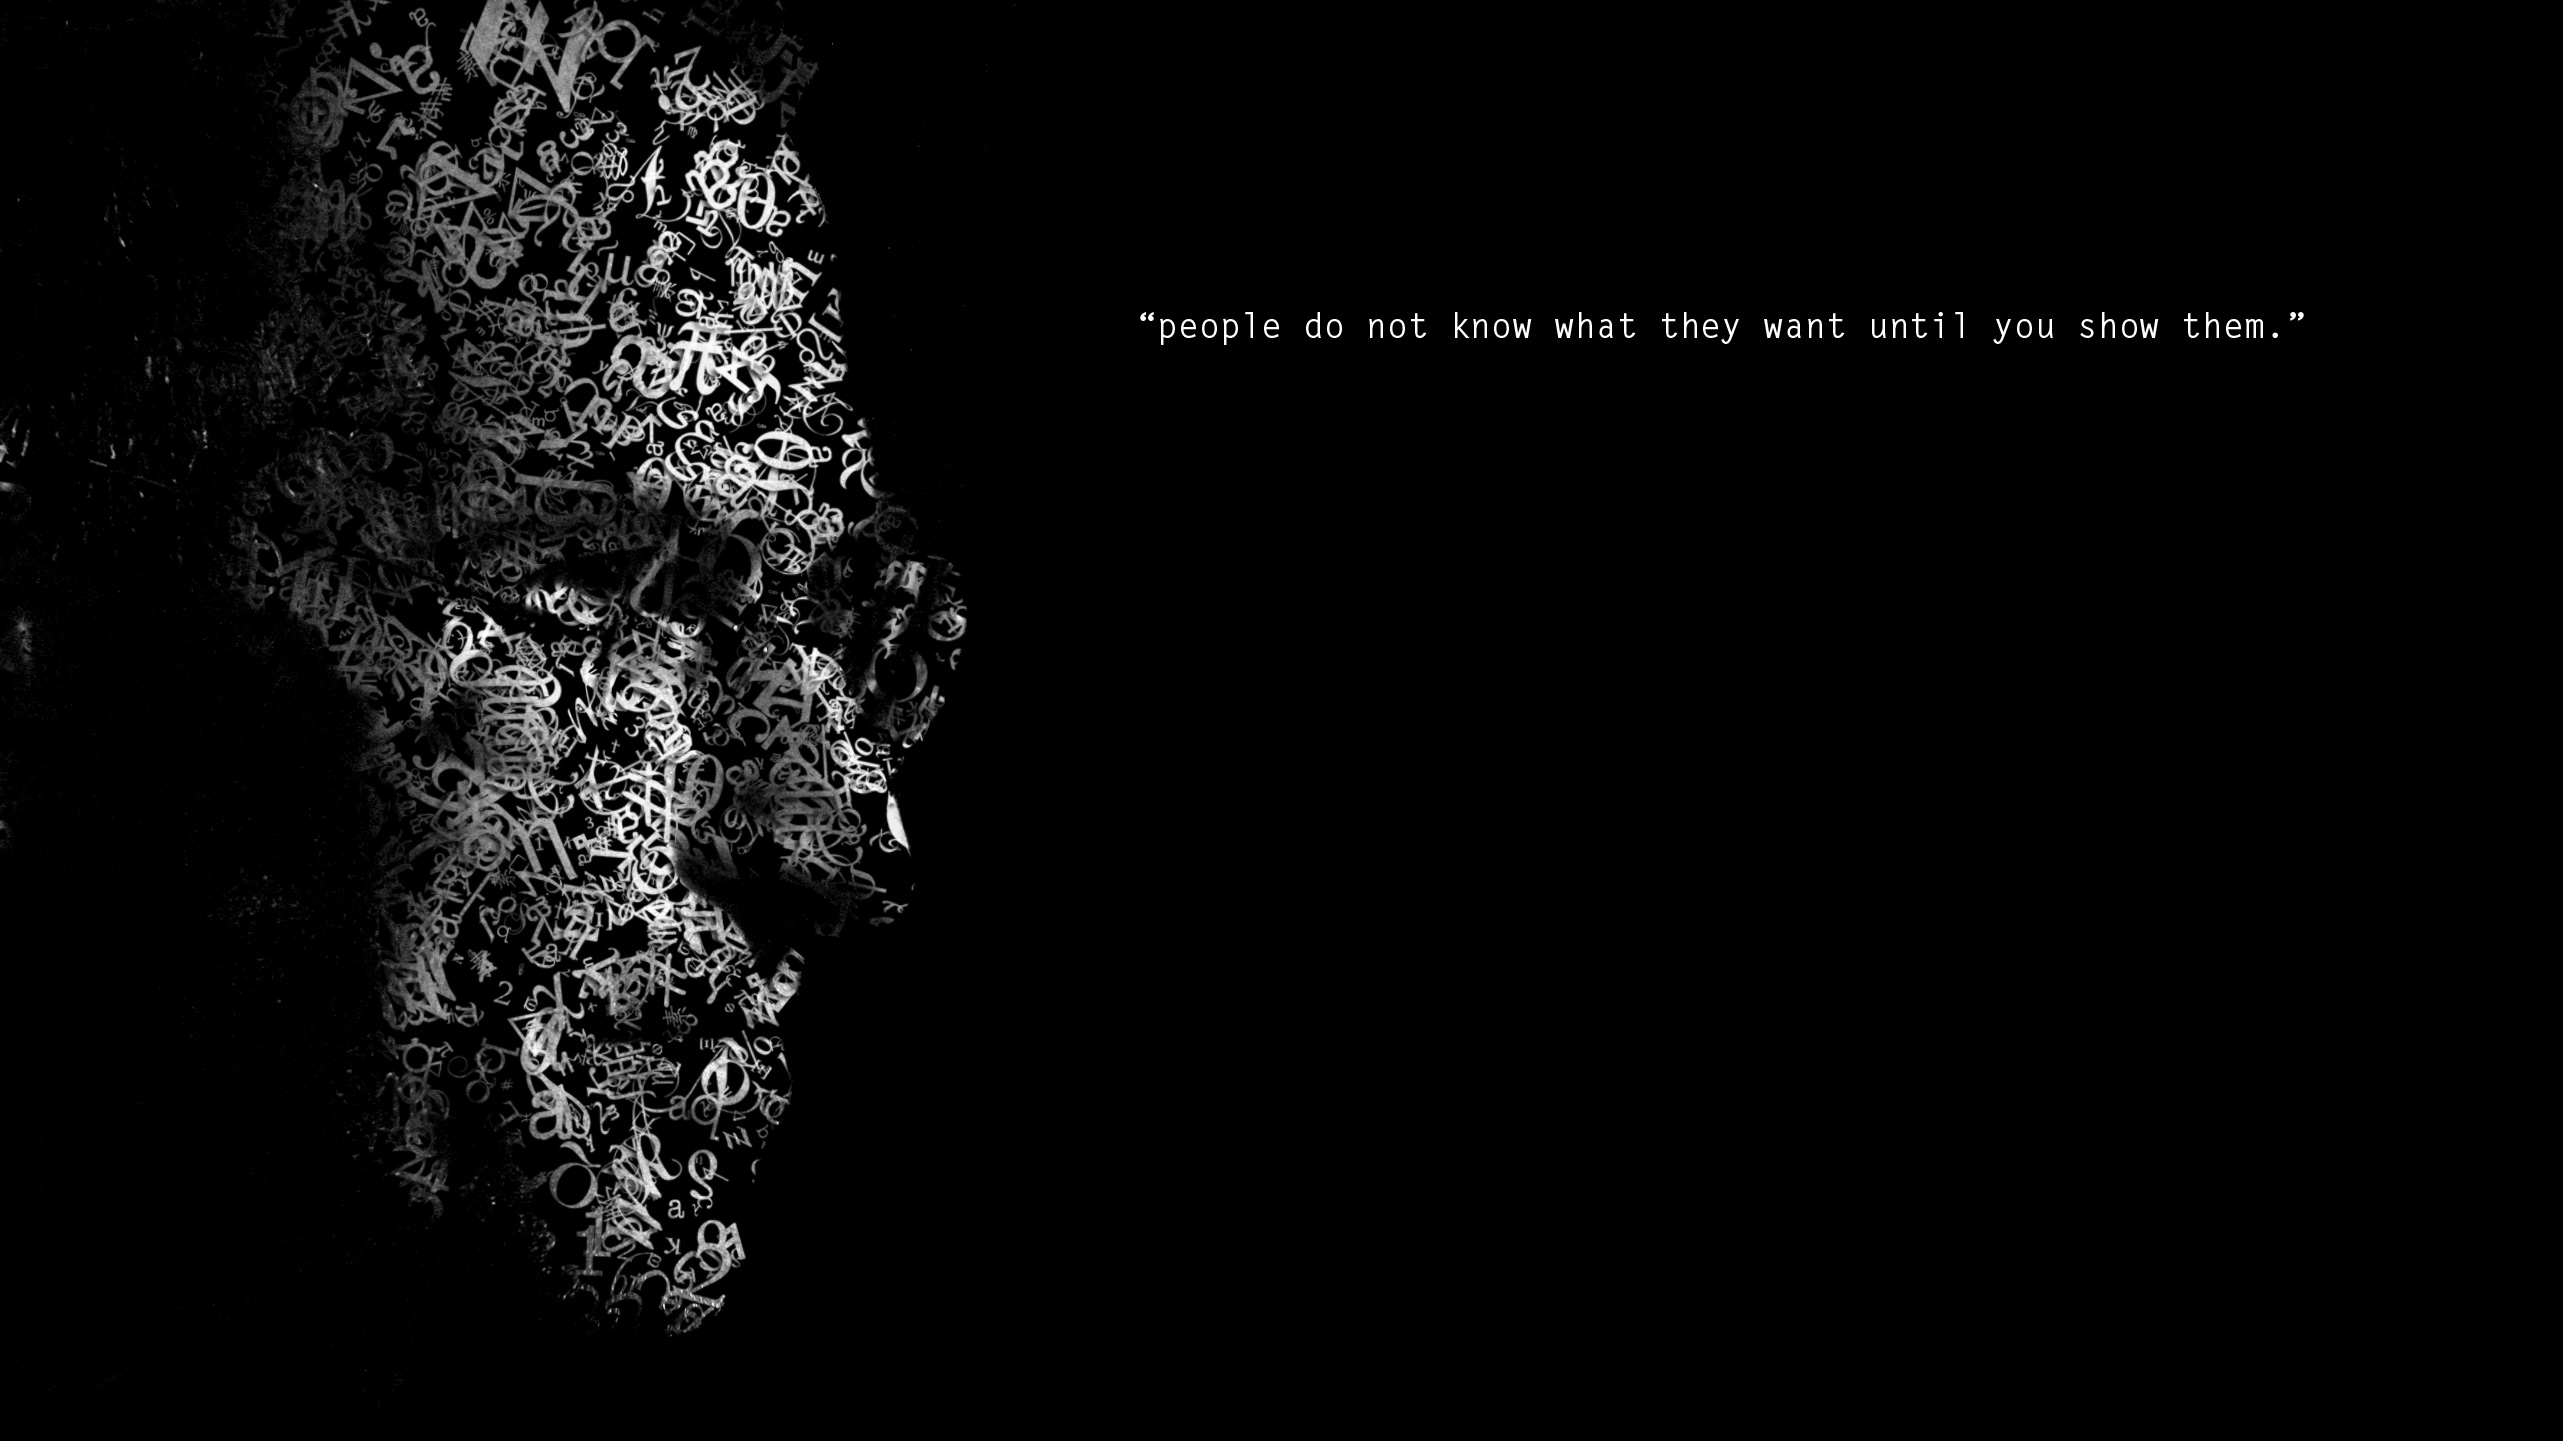 Wallpapers With Work Quotes Wallpapers Of The Week Sunny Clouds And Steve Jobs